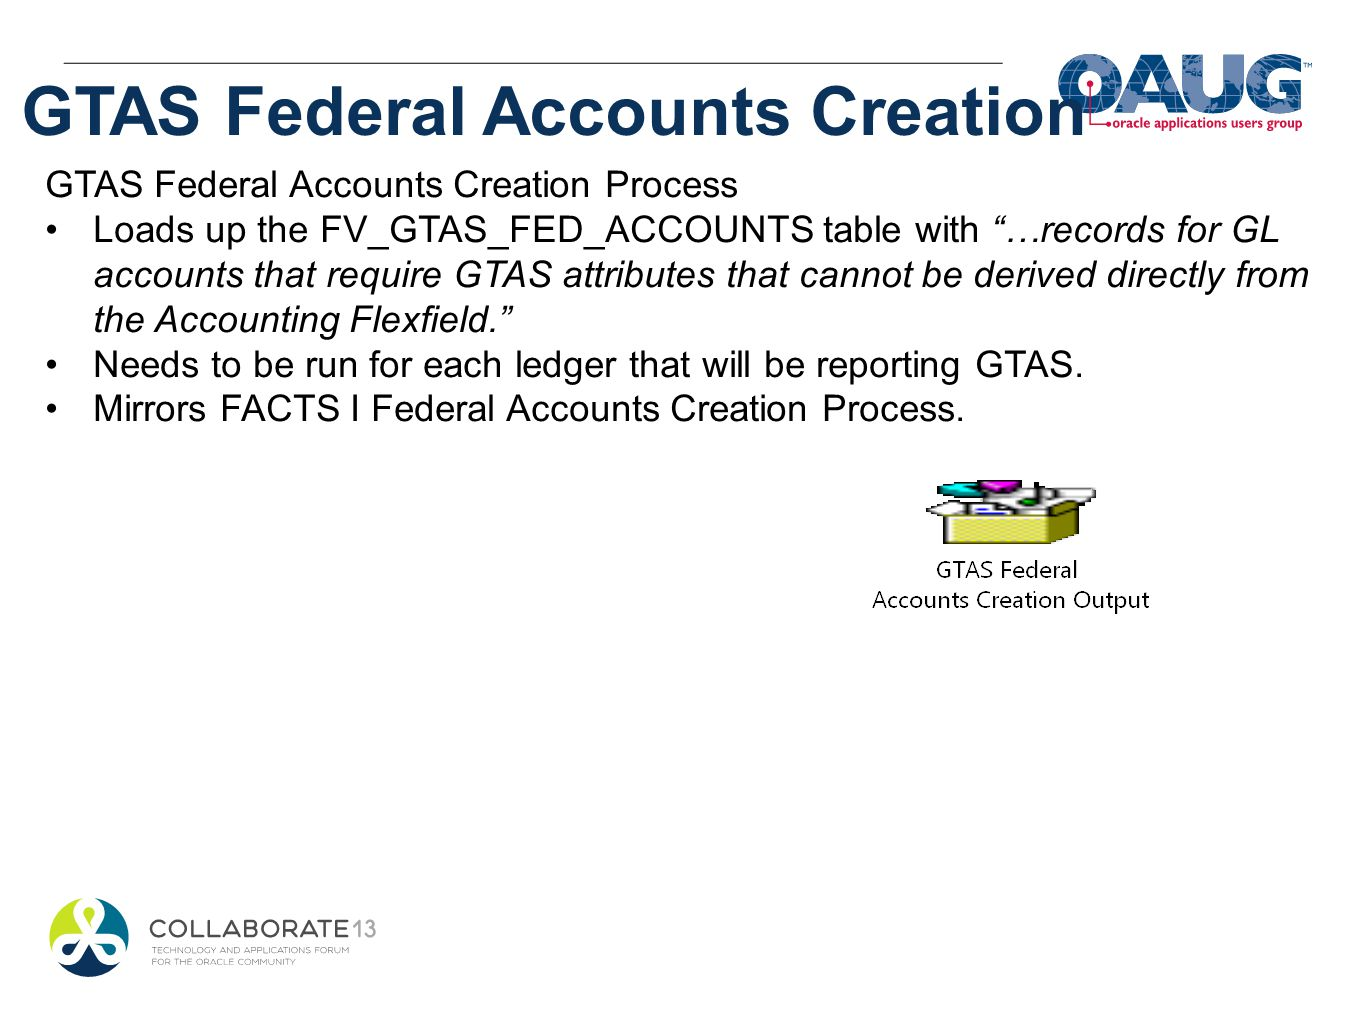 GTAS Federal Accounts Creation